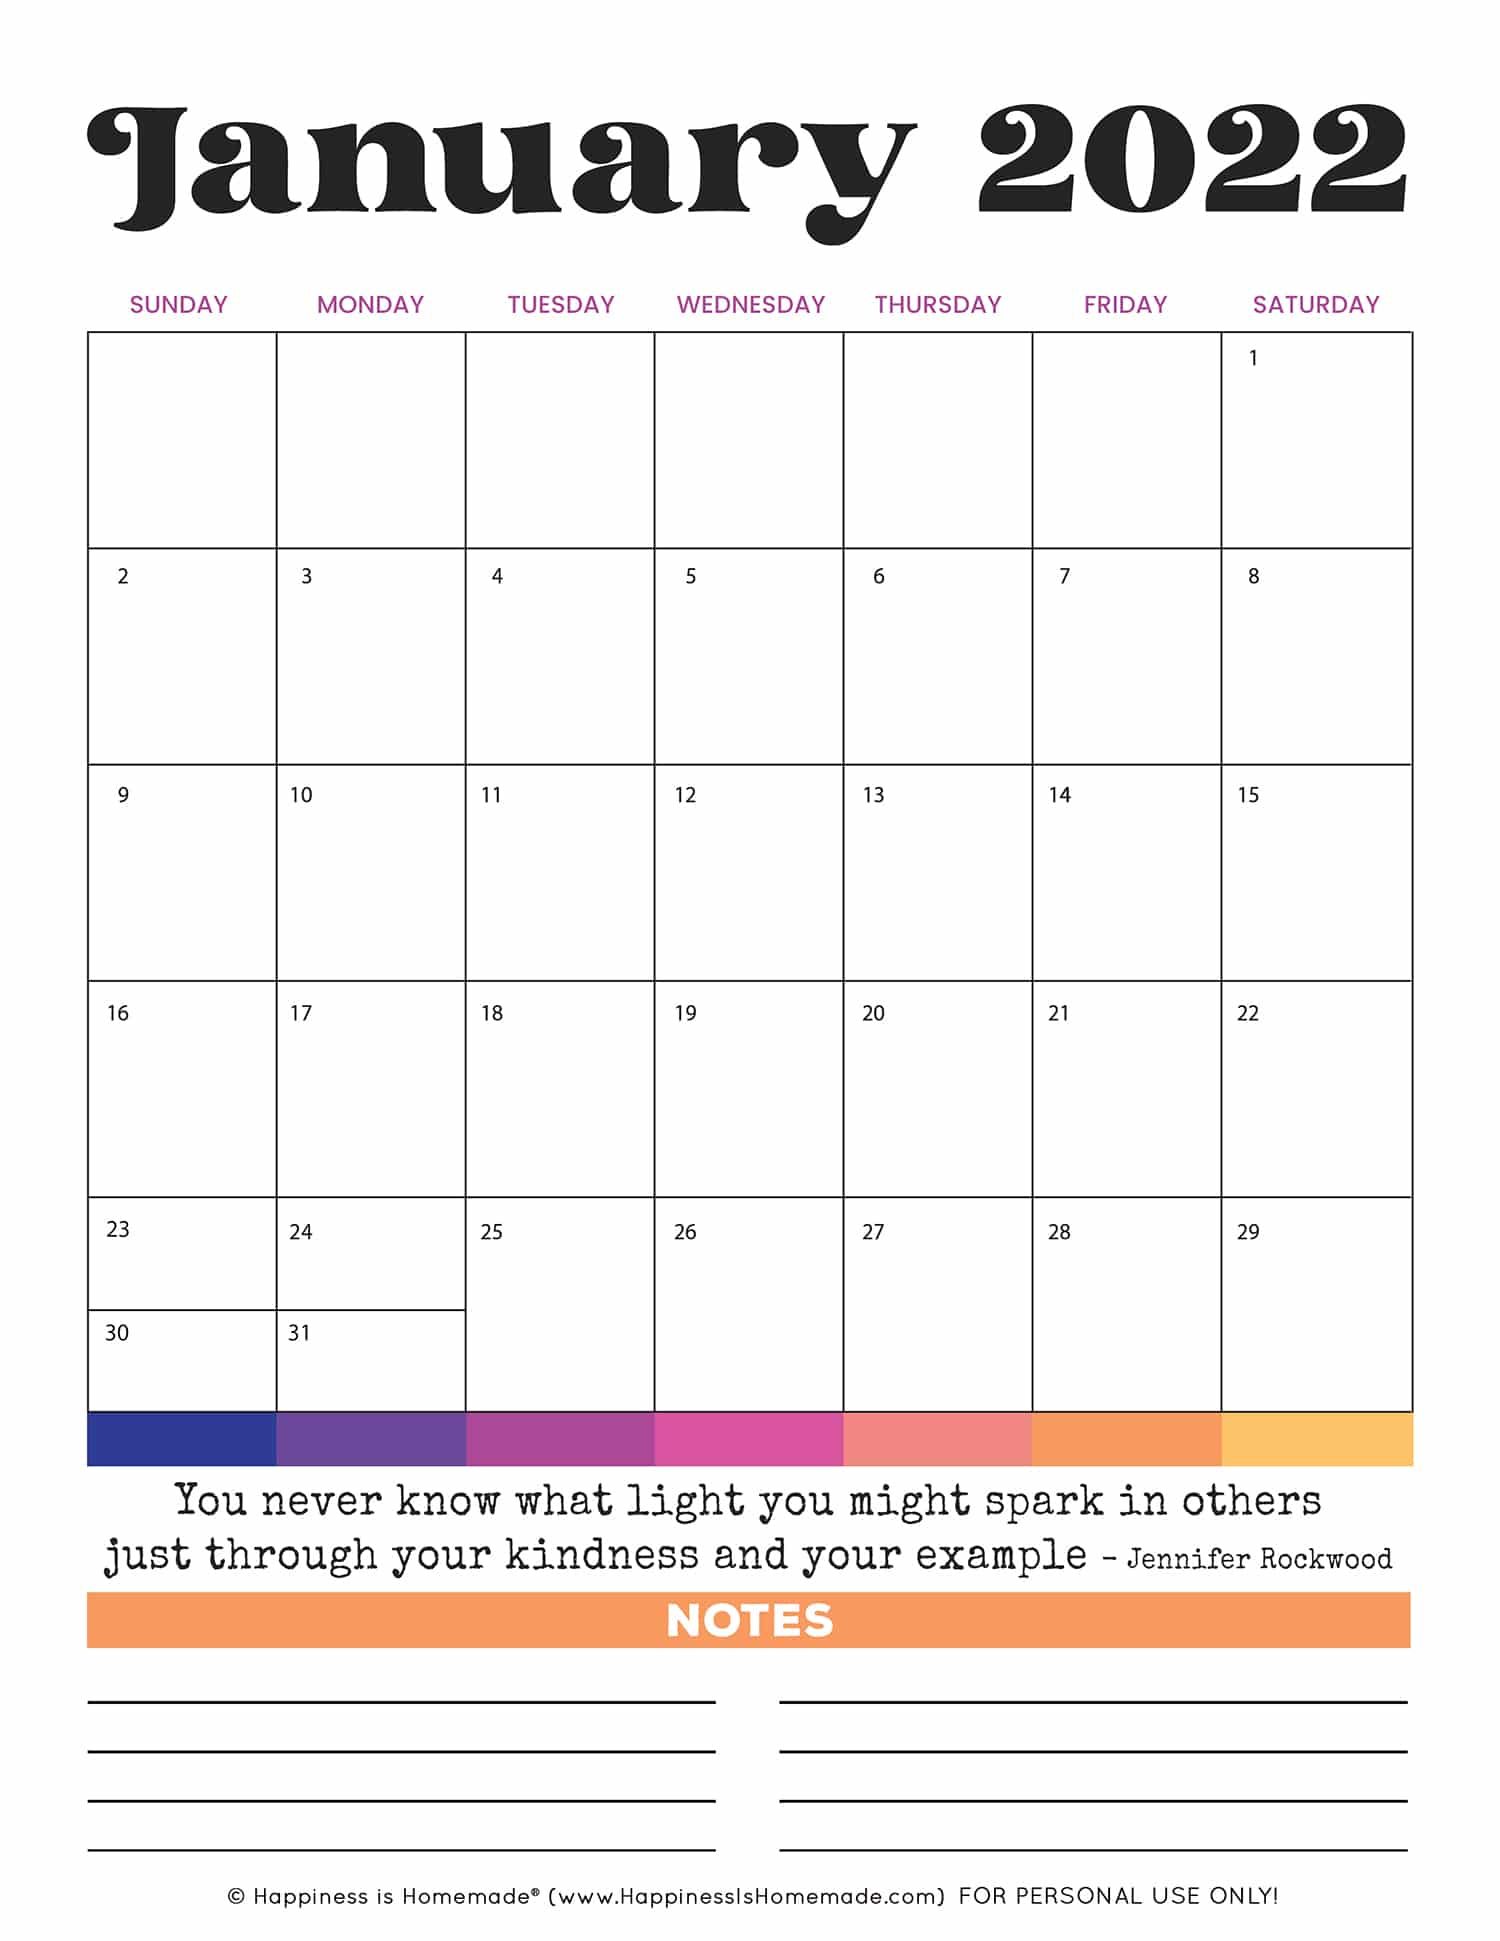 Colorful January 2022 printable calendar with inspirational quote